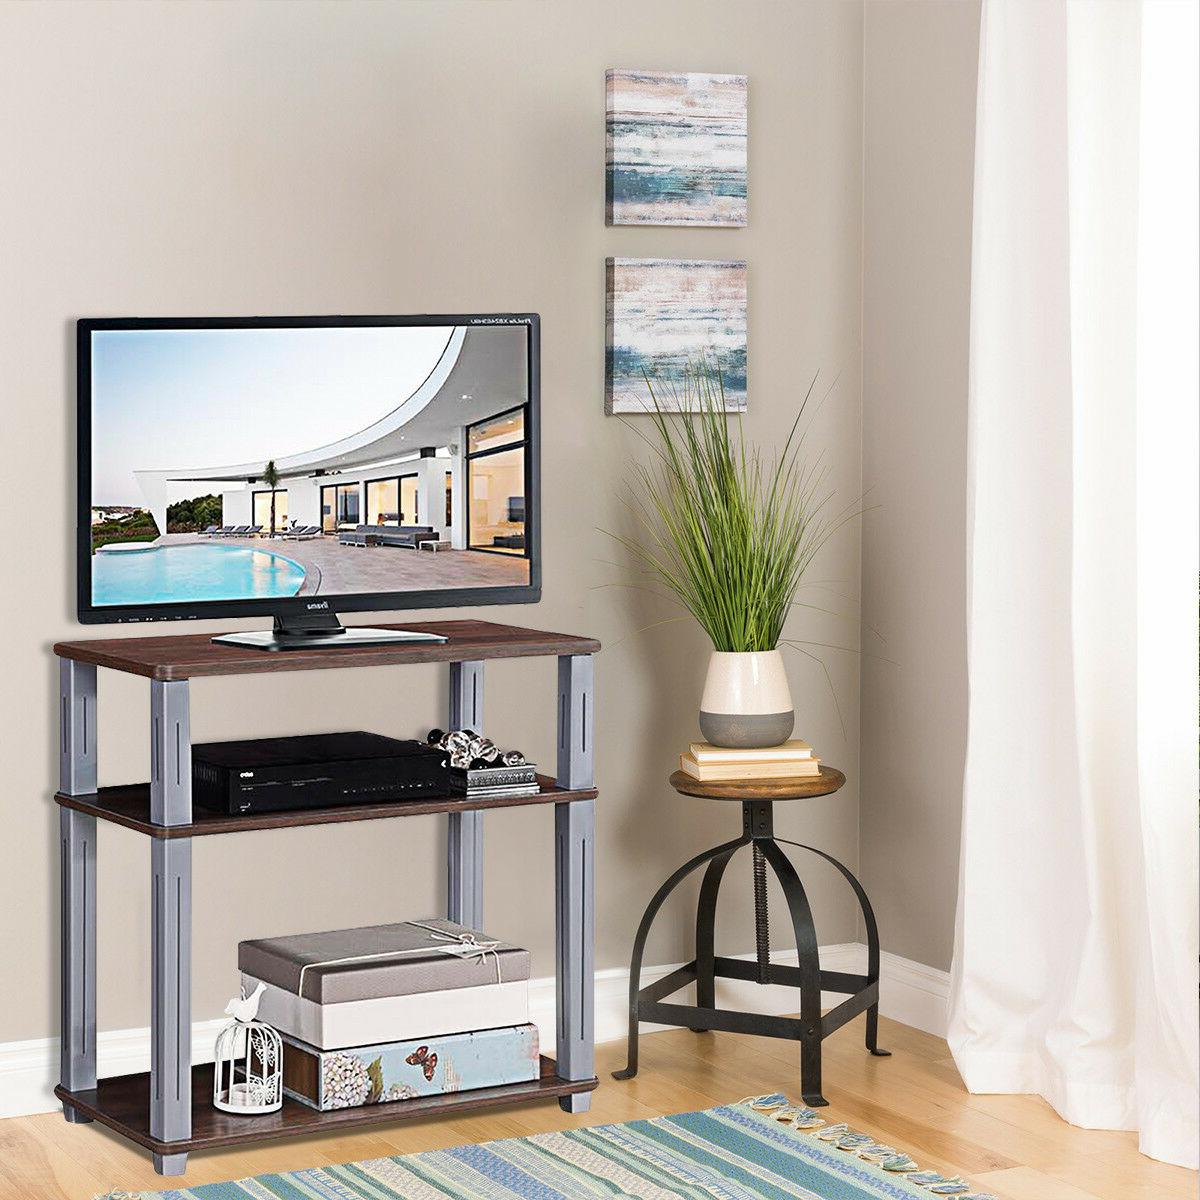 3-Tier Component Multipurpose Shelf Display